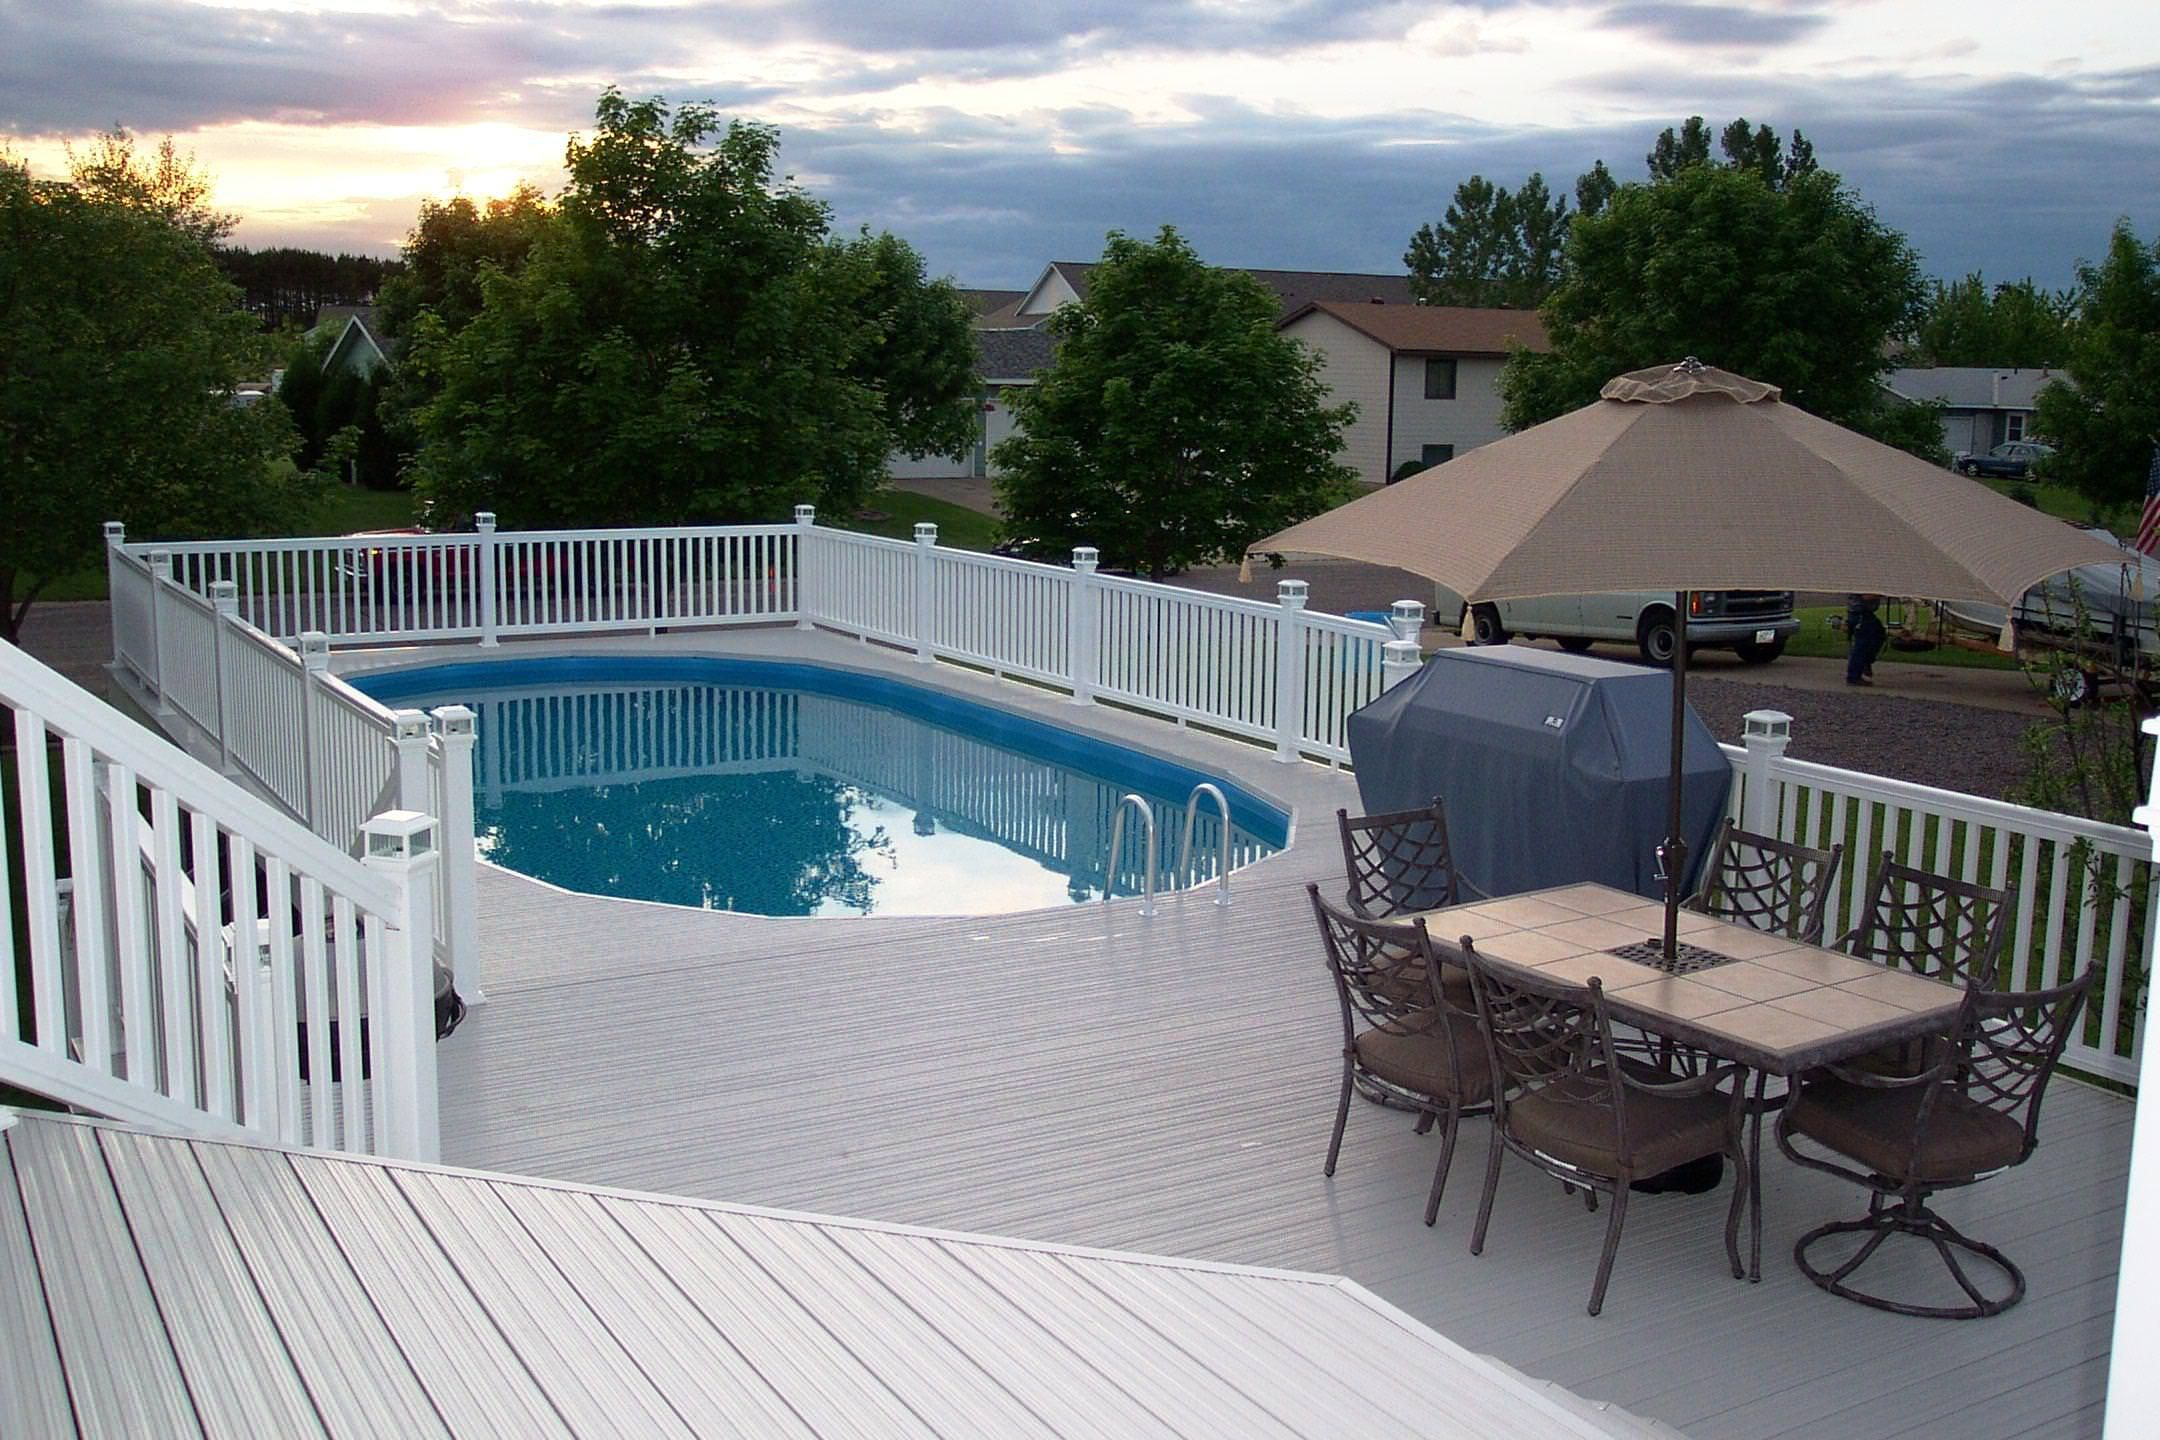 Above Ground Pool Deck Designs above ground pool decks hgtv Oval Above Ground Pool Deck Plans Above Ground Swimming Pools